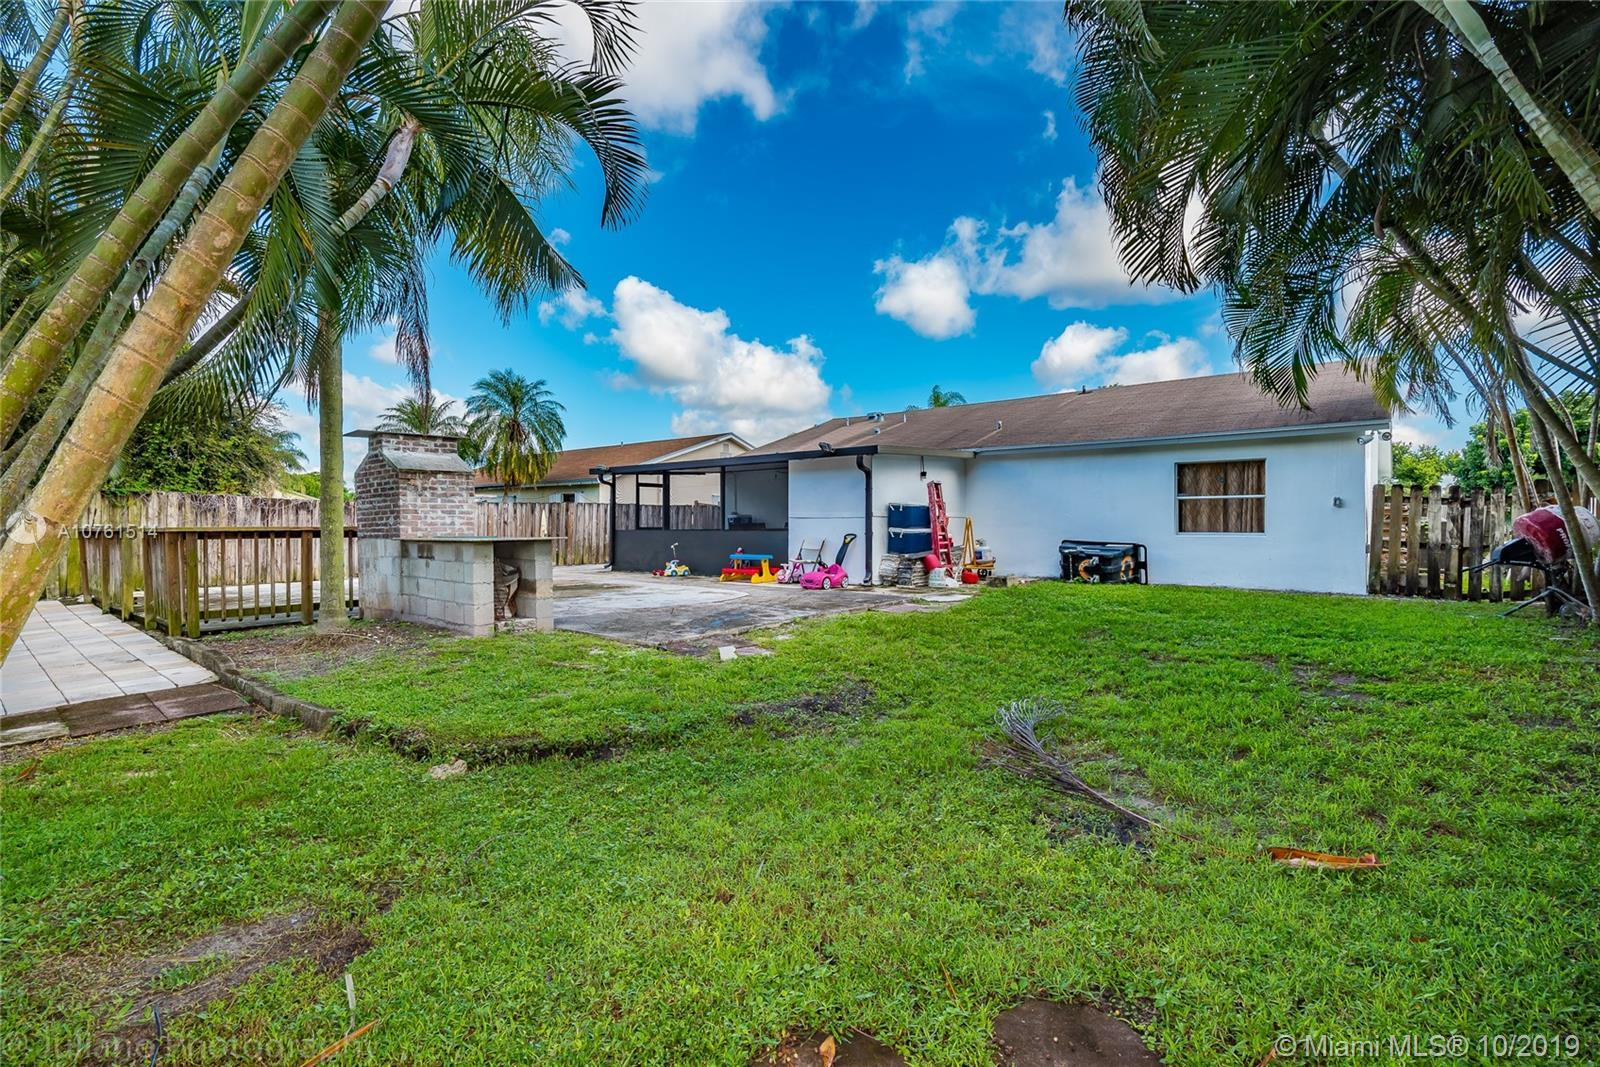 AMAZING REMODELED HOME !!!! BE PREPARED TO BE WOWED IN THIS LIGHT AND BRIGHT 3 BEDROOM 2 BATH SINGLE